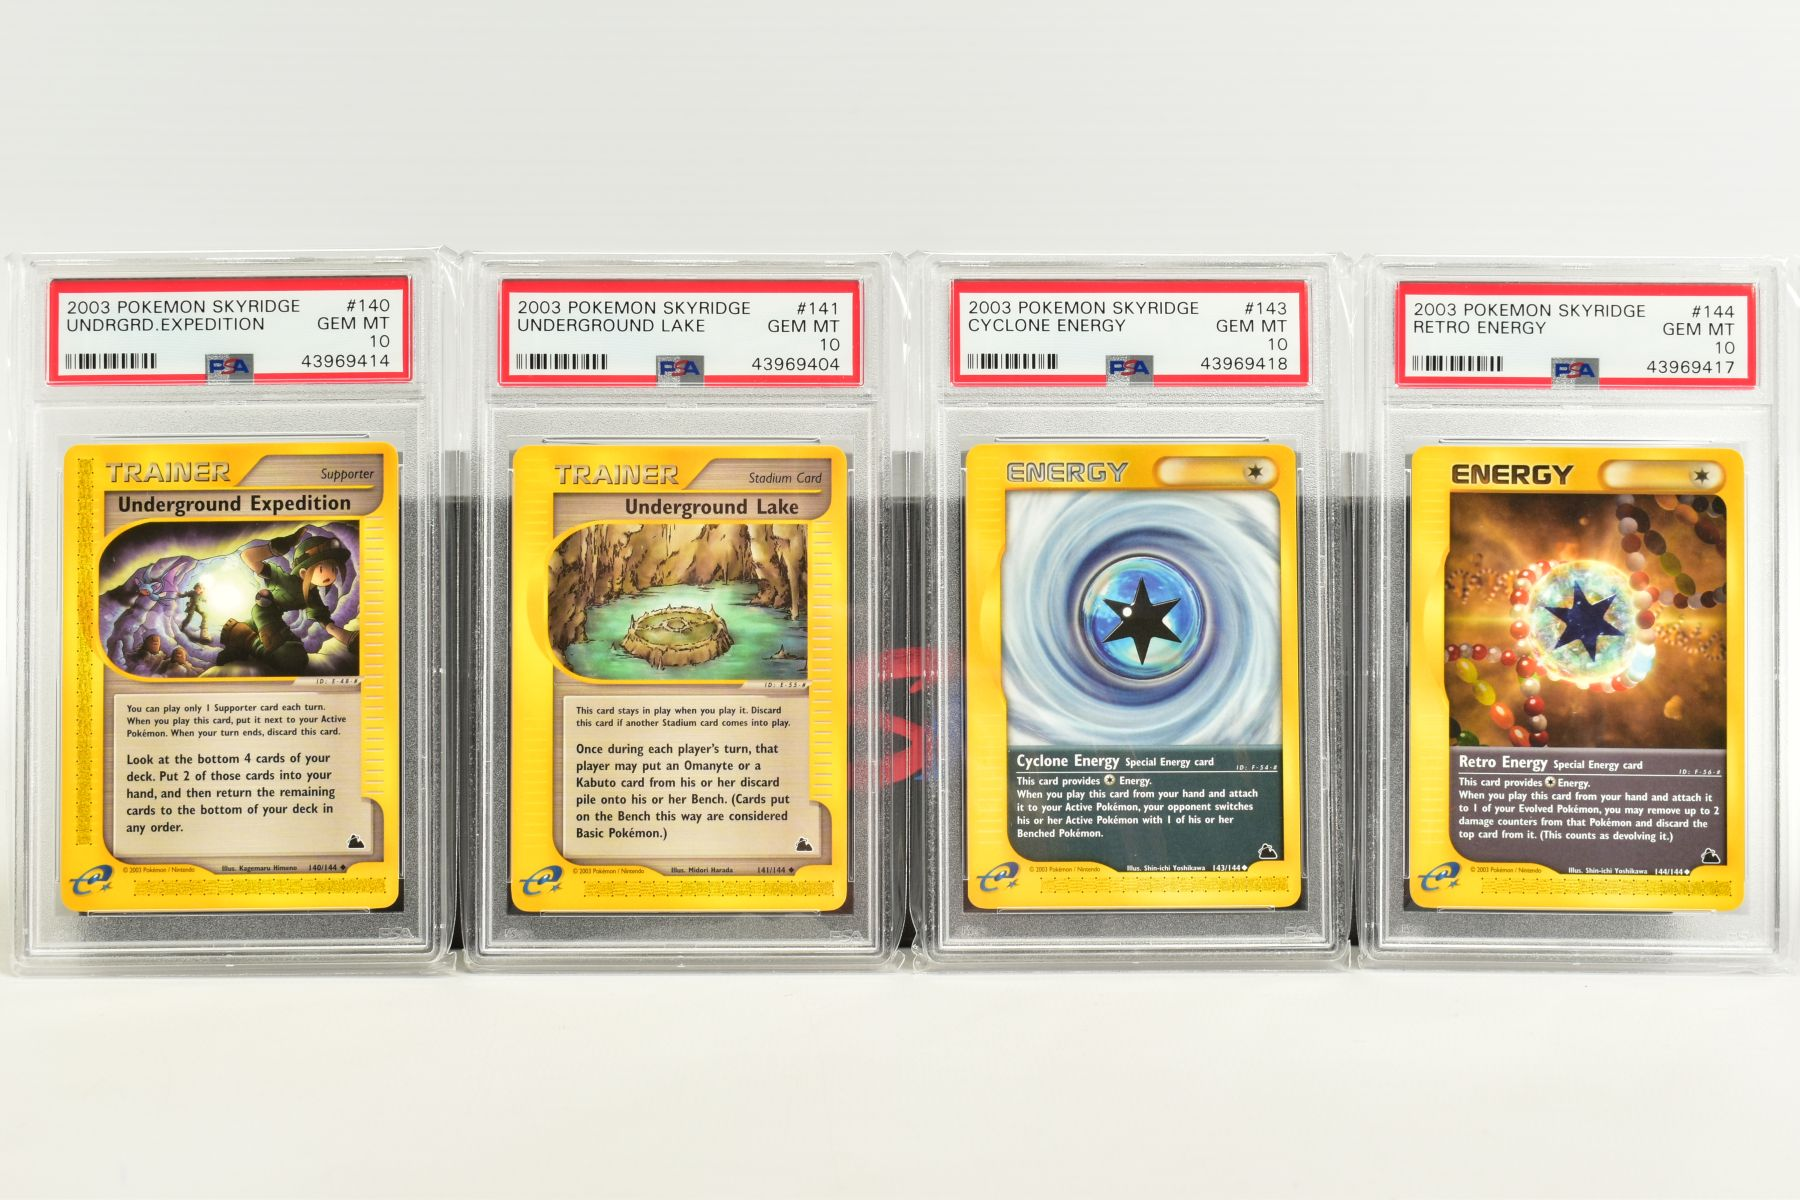 A QUANTITY OF PSA GRADED POKEMON SKYRIDGE SET CARDS, all are graded GEM MINT 10 and are sealed in - Image 9 of 9